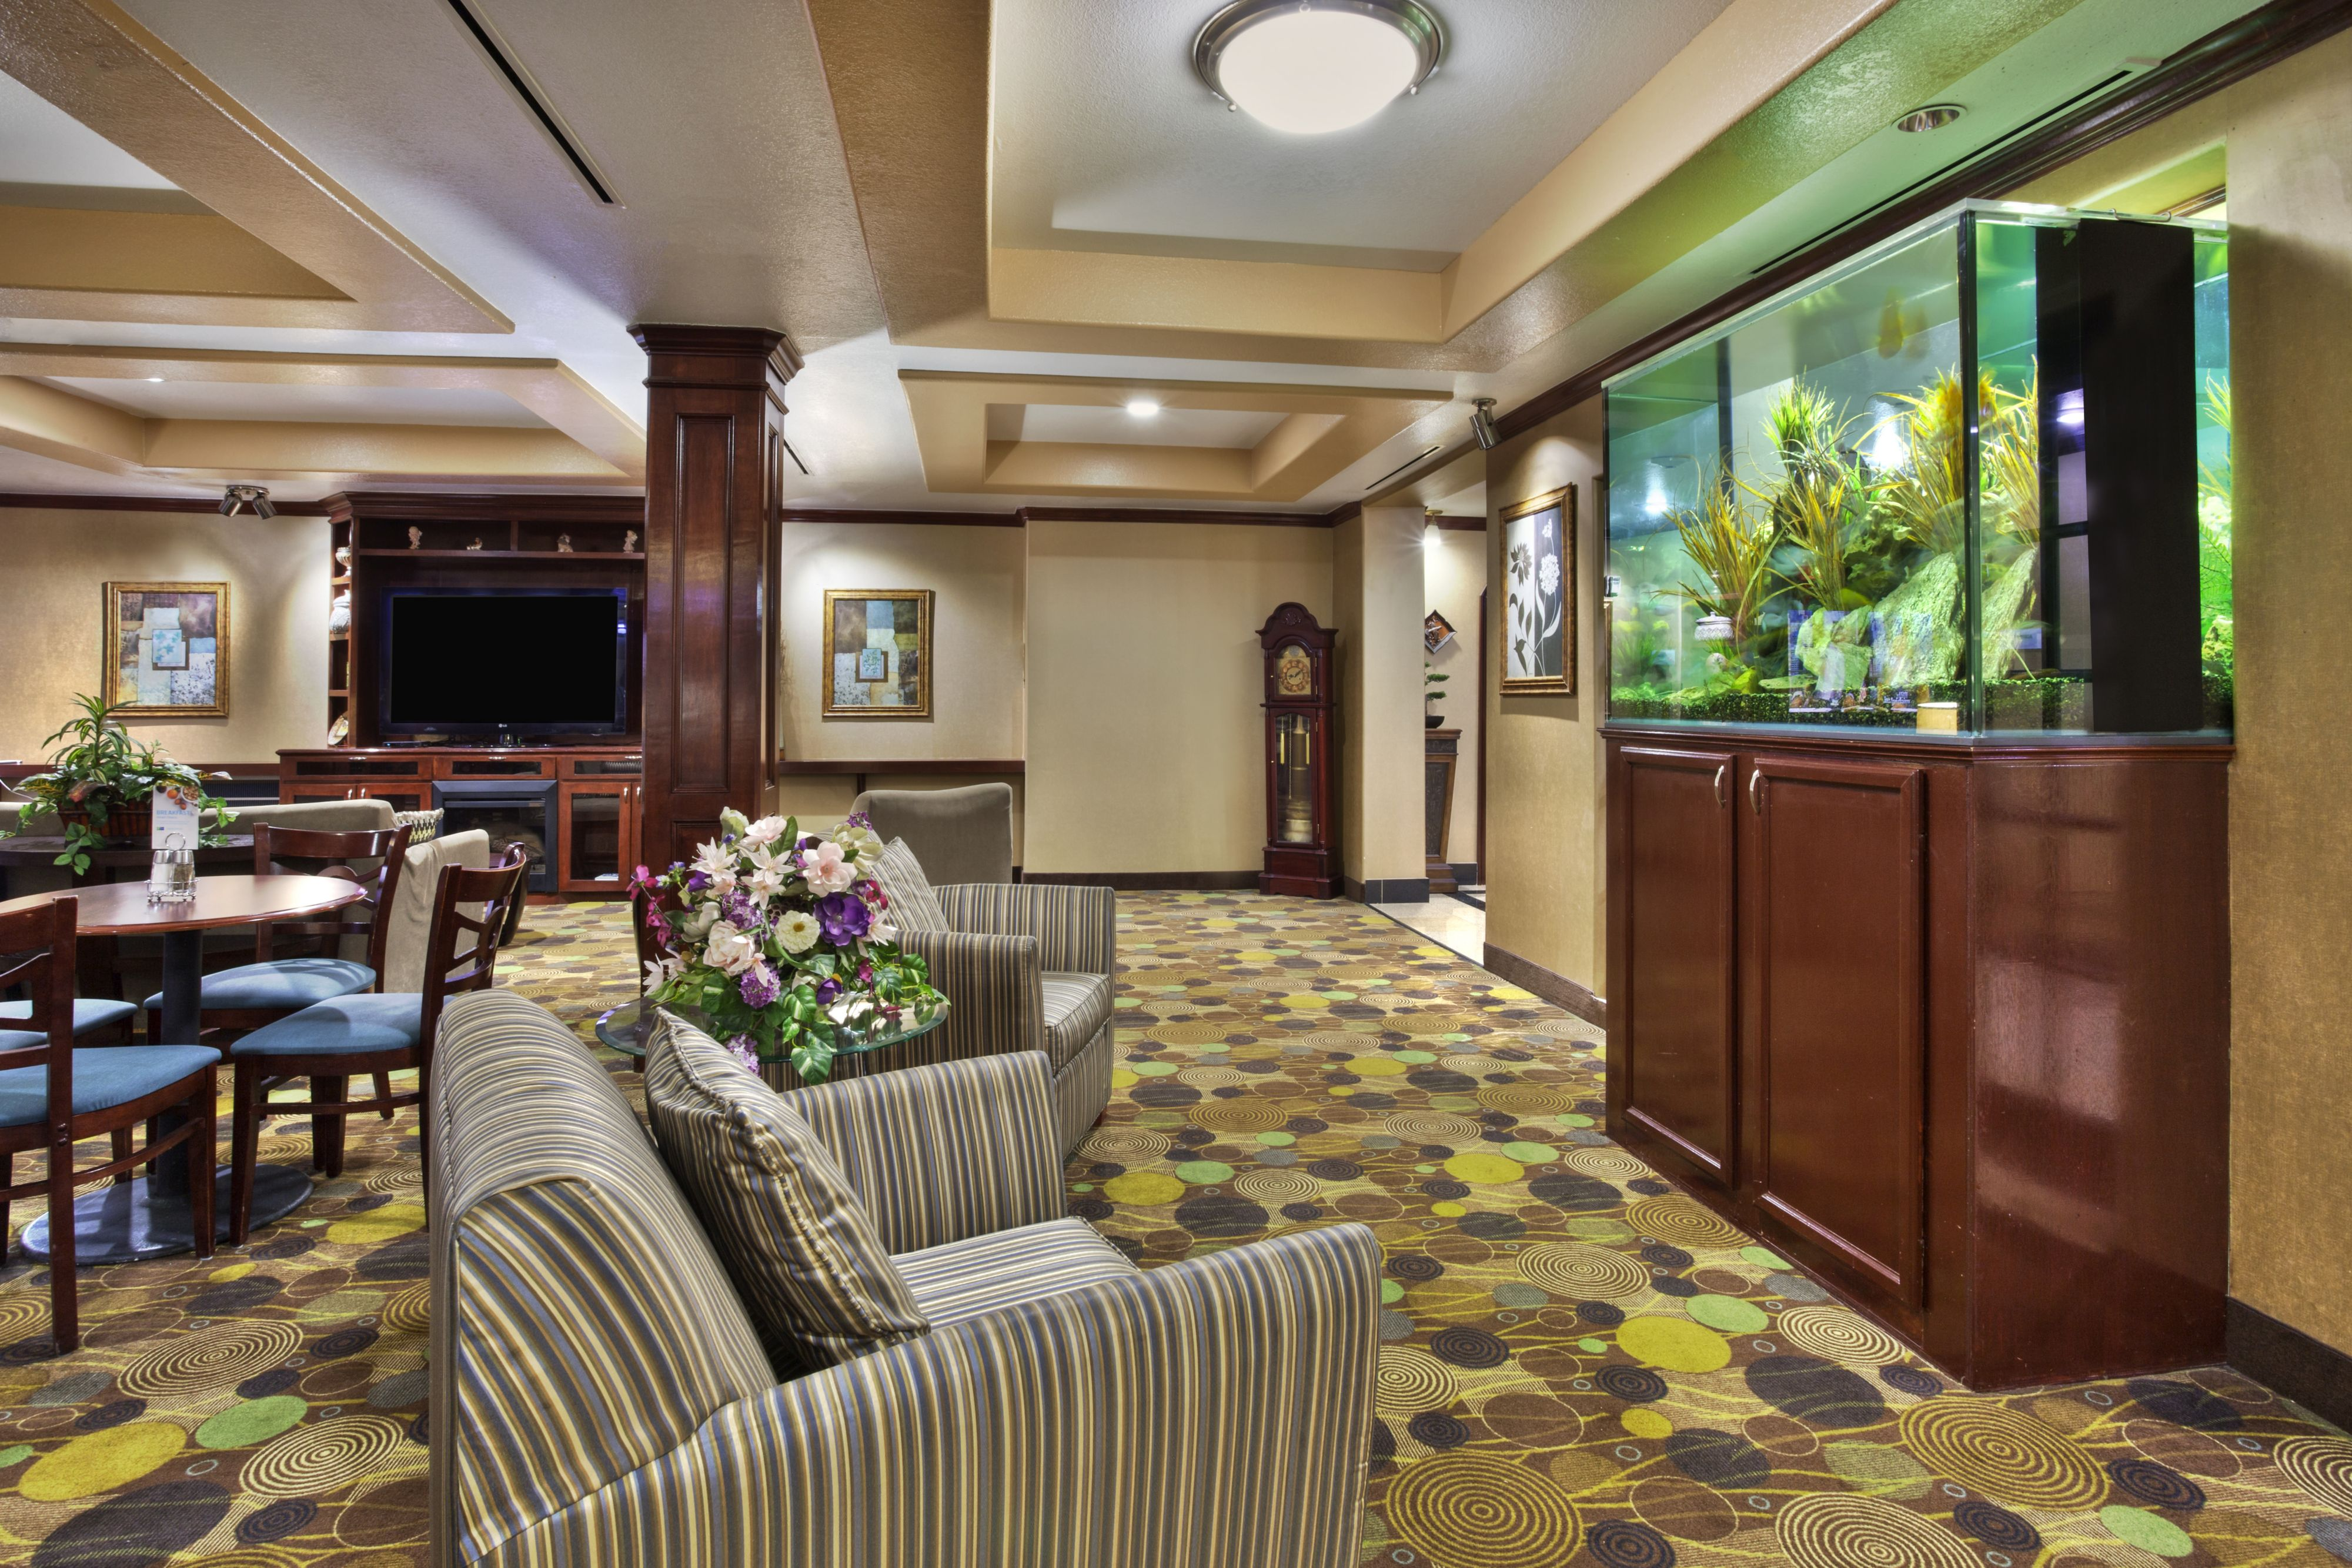 Holiday Inn Express & Suites Sealy image 4